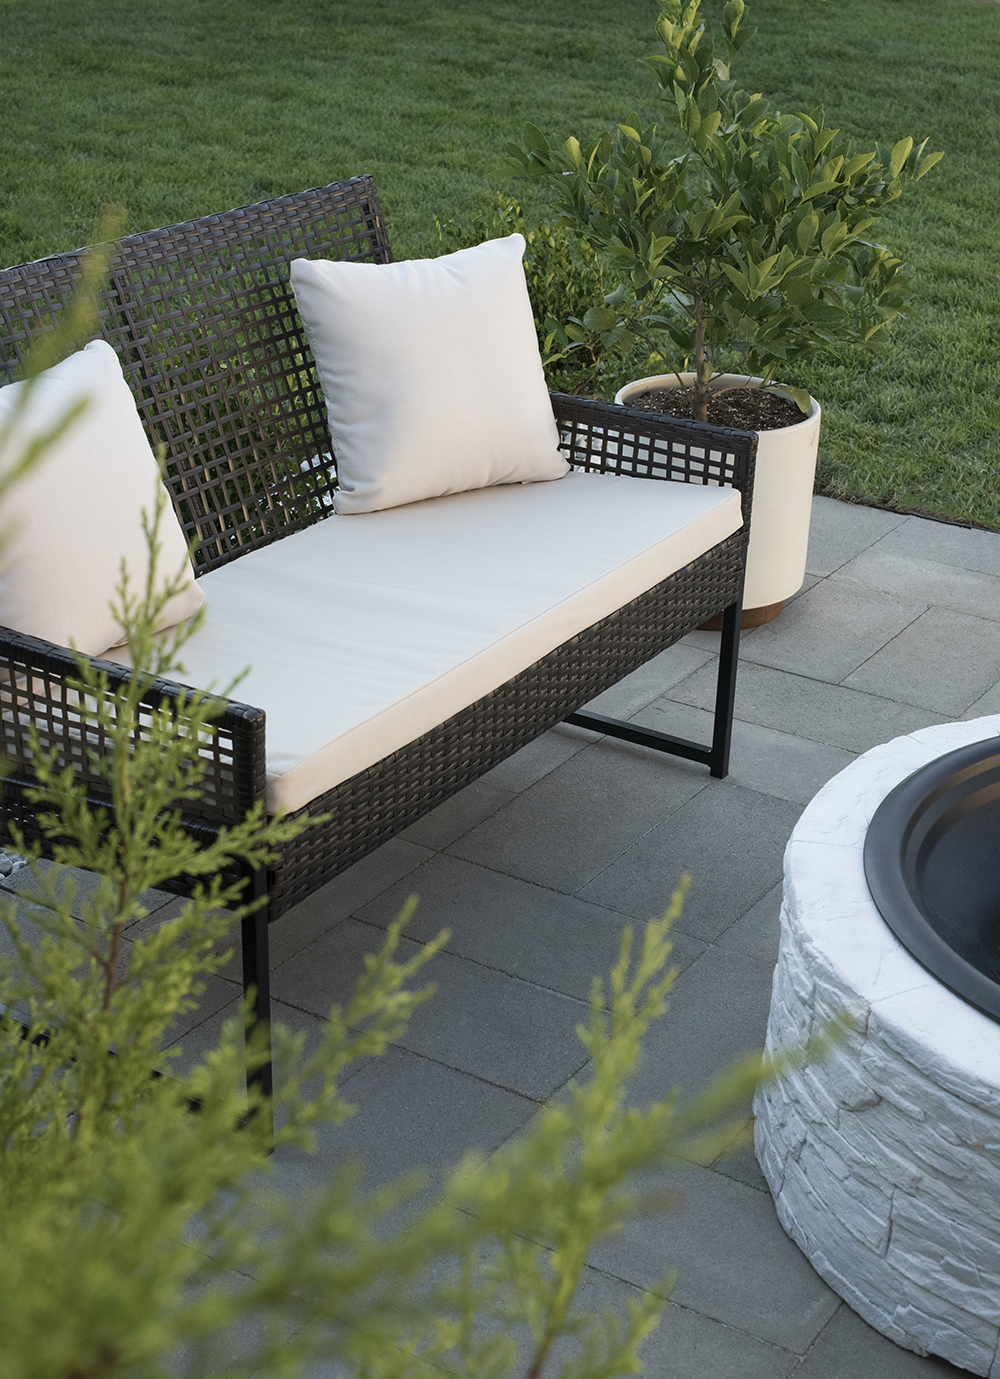 Roundup : The Best Fire Pits & Fire Tables - roomfortuesday.com